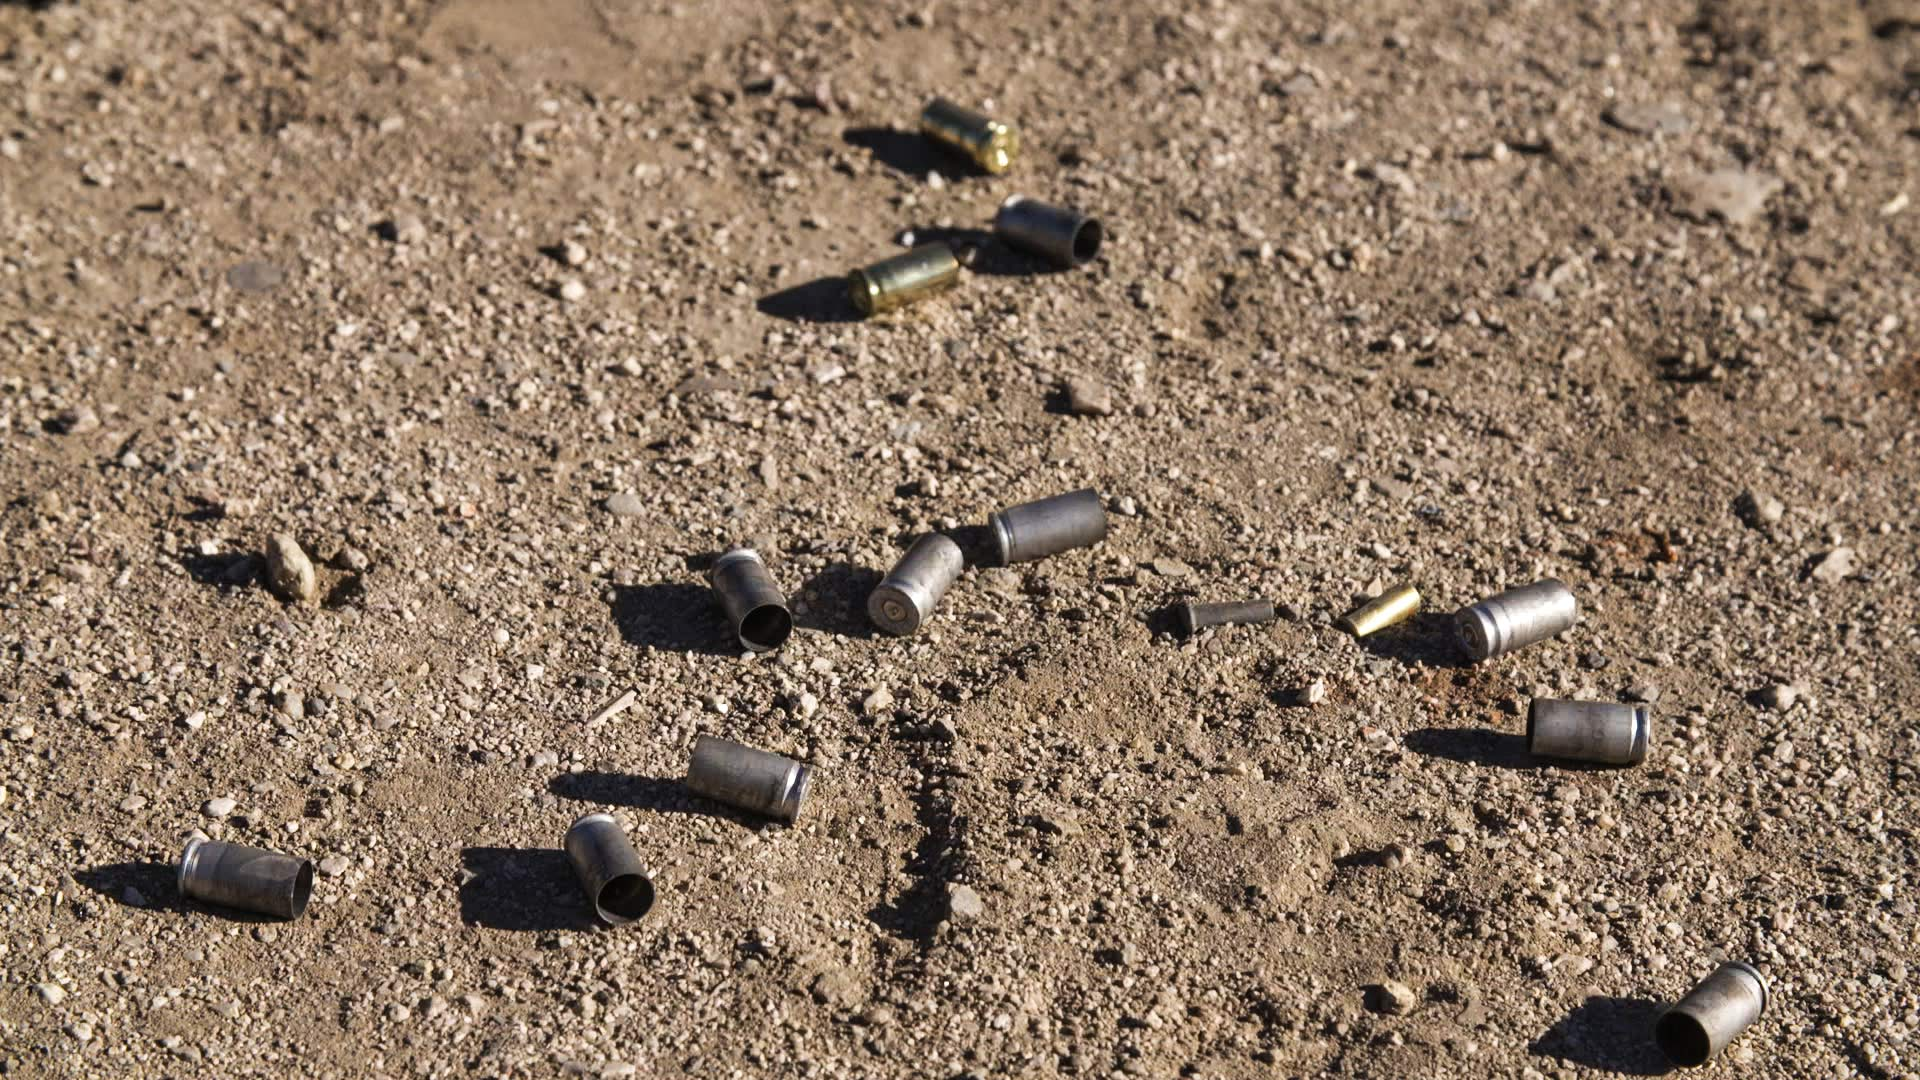 Bullet casings on ground at an outdoor firing range.